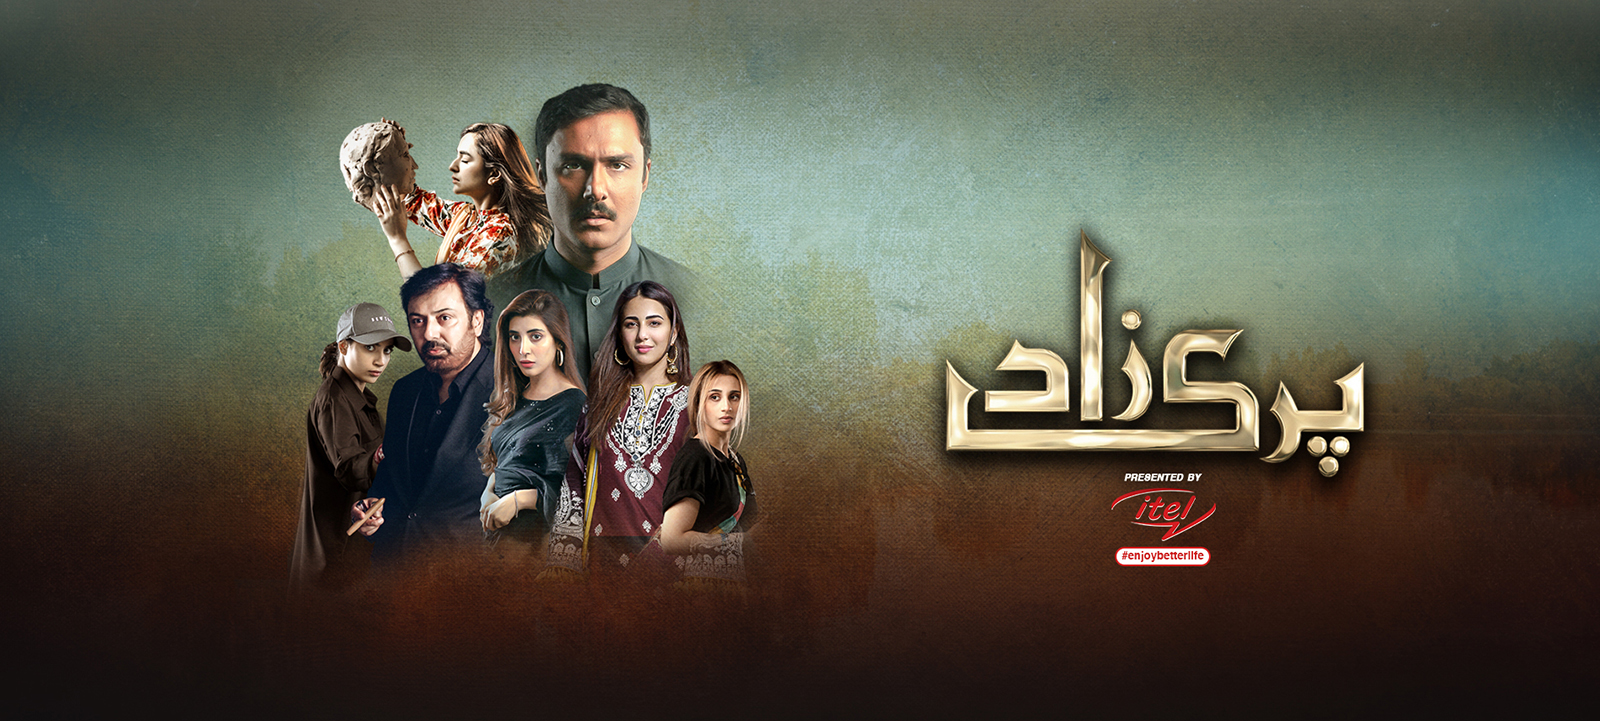 """Every new episode of Parizaad brings an exciting twist to the story by hooking up the viewers even more with the story. In the previous episode, Parizaad moved to Karachi and got a new job. However, he found himself in a challenging position when he caught an unusual activity in the factory. The new episode 10 begins with what happened when he complained about it to Mr. Behroze.  When Parizaad Complained to Mr. Behroze!  Parizaad is an honest man who believes in following the right path to reach his destination. He managed to approach his boss Mr. Behroze to complain about the unusual activity he observed at night going on in the factory under the supervision of Mustafa. As he told him everything, Mr. Behroze stared into Mustafa's eyes and instructed his PA to bring Parizaad at home in the evening.  Parizaad's Visit to Mr. Behroze's Place!  As Parizaad paid a visit to Mr. Behroze's place, his boss instructed him to tell the whole story now. He repeated his words and openly accused Mustafa of it. When the PA asked if Parizaad has any evidence for this complaint, he refused. The PA threatened him that Parizaad might be losing his life if he will be proved wrong. He daringly said that he is not afraid of it but the truth cannot be changed. Behroze again directed to bring Parizaad to his home.  Parizaad's Final Meeting with Behroze!   When he met him again, Mr. Behroze said, """"You are brave, you are loyal but you are also very foolish; and fool always gets killed because of his honesty."""" He added, """"You should have gathered all the proof against Mustafa before accusing him."""" Behroze said that Mustafa is loyal to him for 25 years and if Parizaad was proved wrong, he would have been killed. He further explained that the only mistake Mustafa made was that he didn't check who was on the duty during midnight that day. Behroze asked Parizaad about why he has come to Karachi to which he responded that he wants to earn and become a wealthy man. Behroze said that money is not some"""